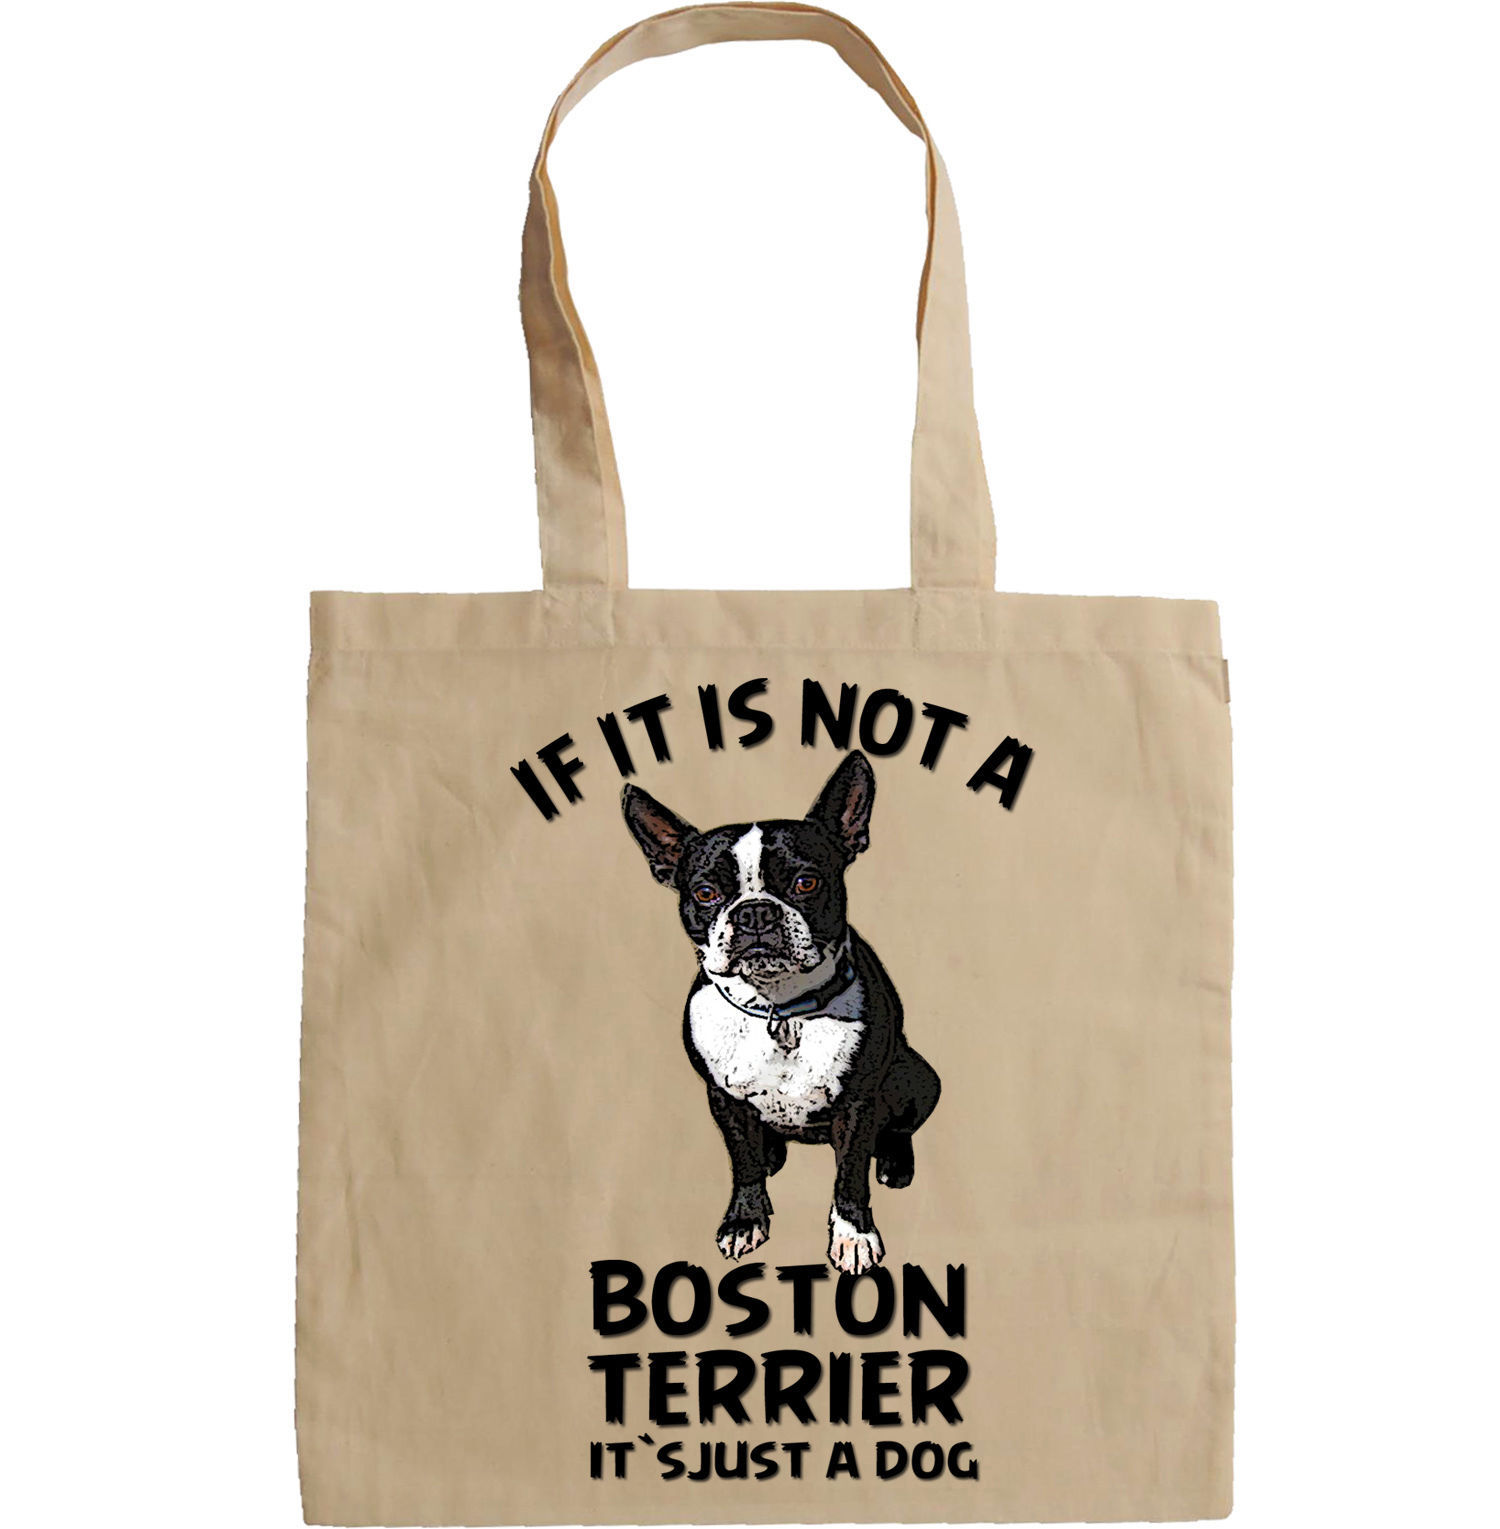 BOSTON TERRIER IF IT IS NOT - NEW AMAZING GRAPHIC HAND BAG/TOTE BAG